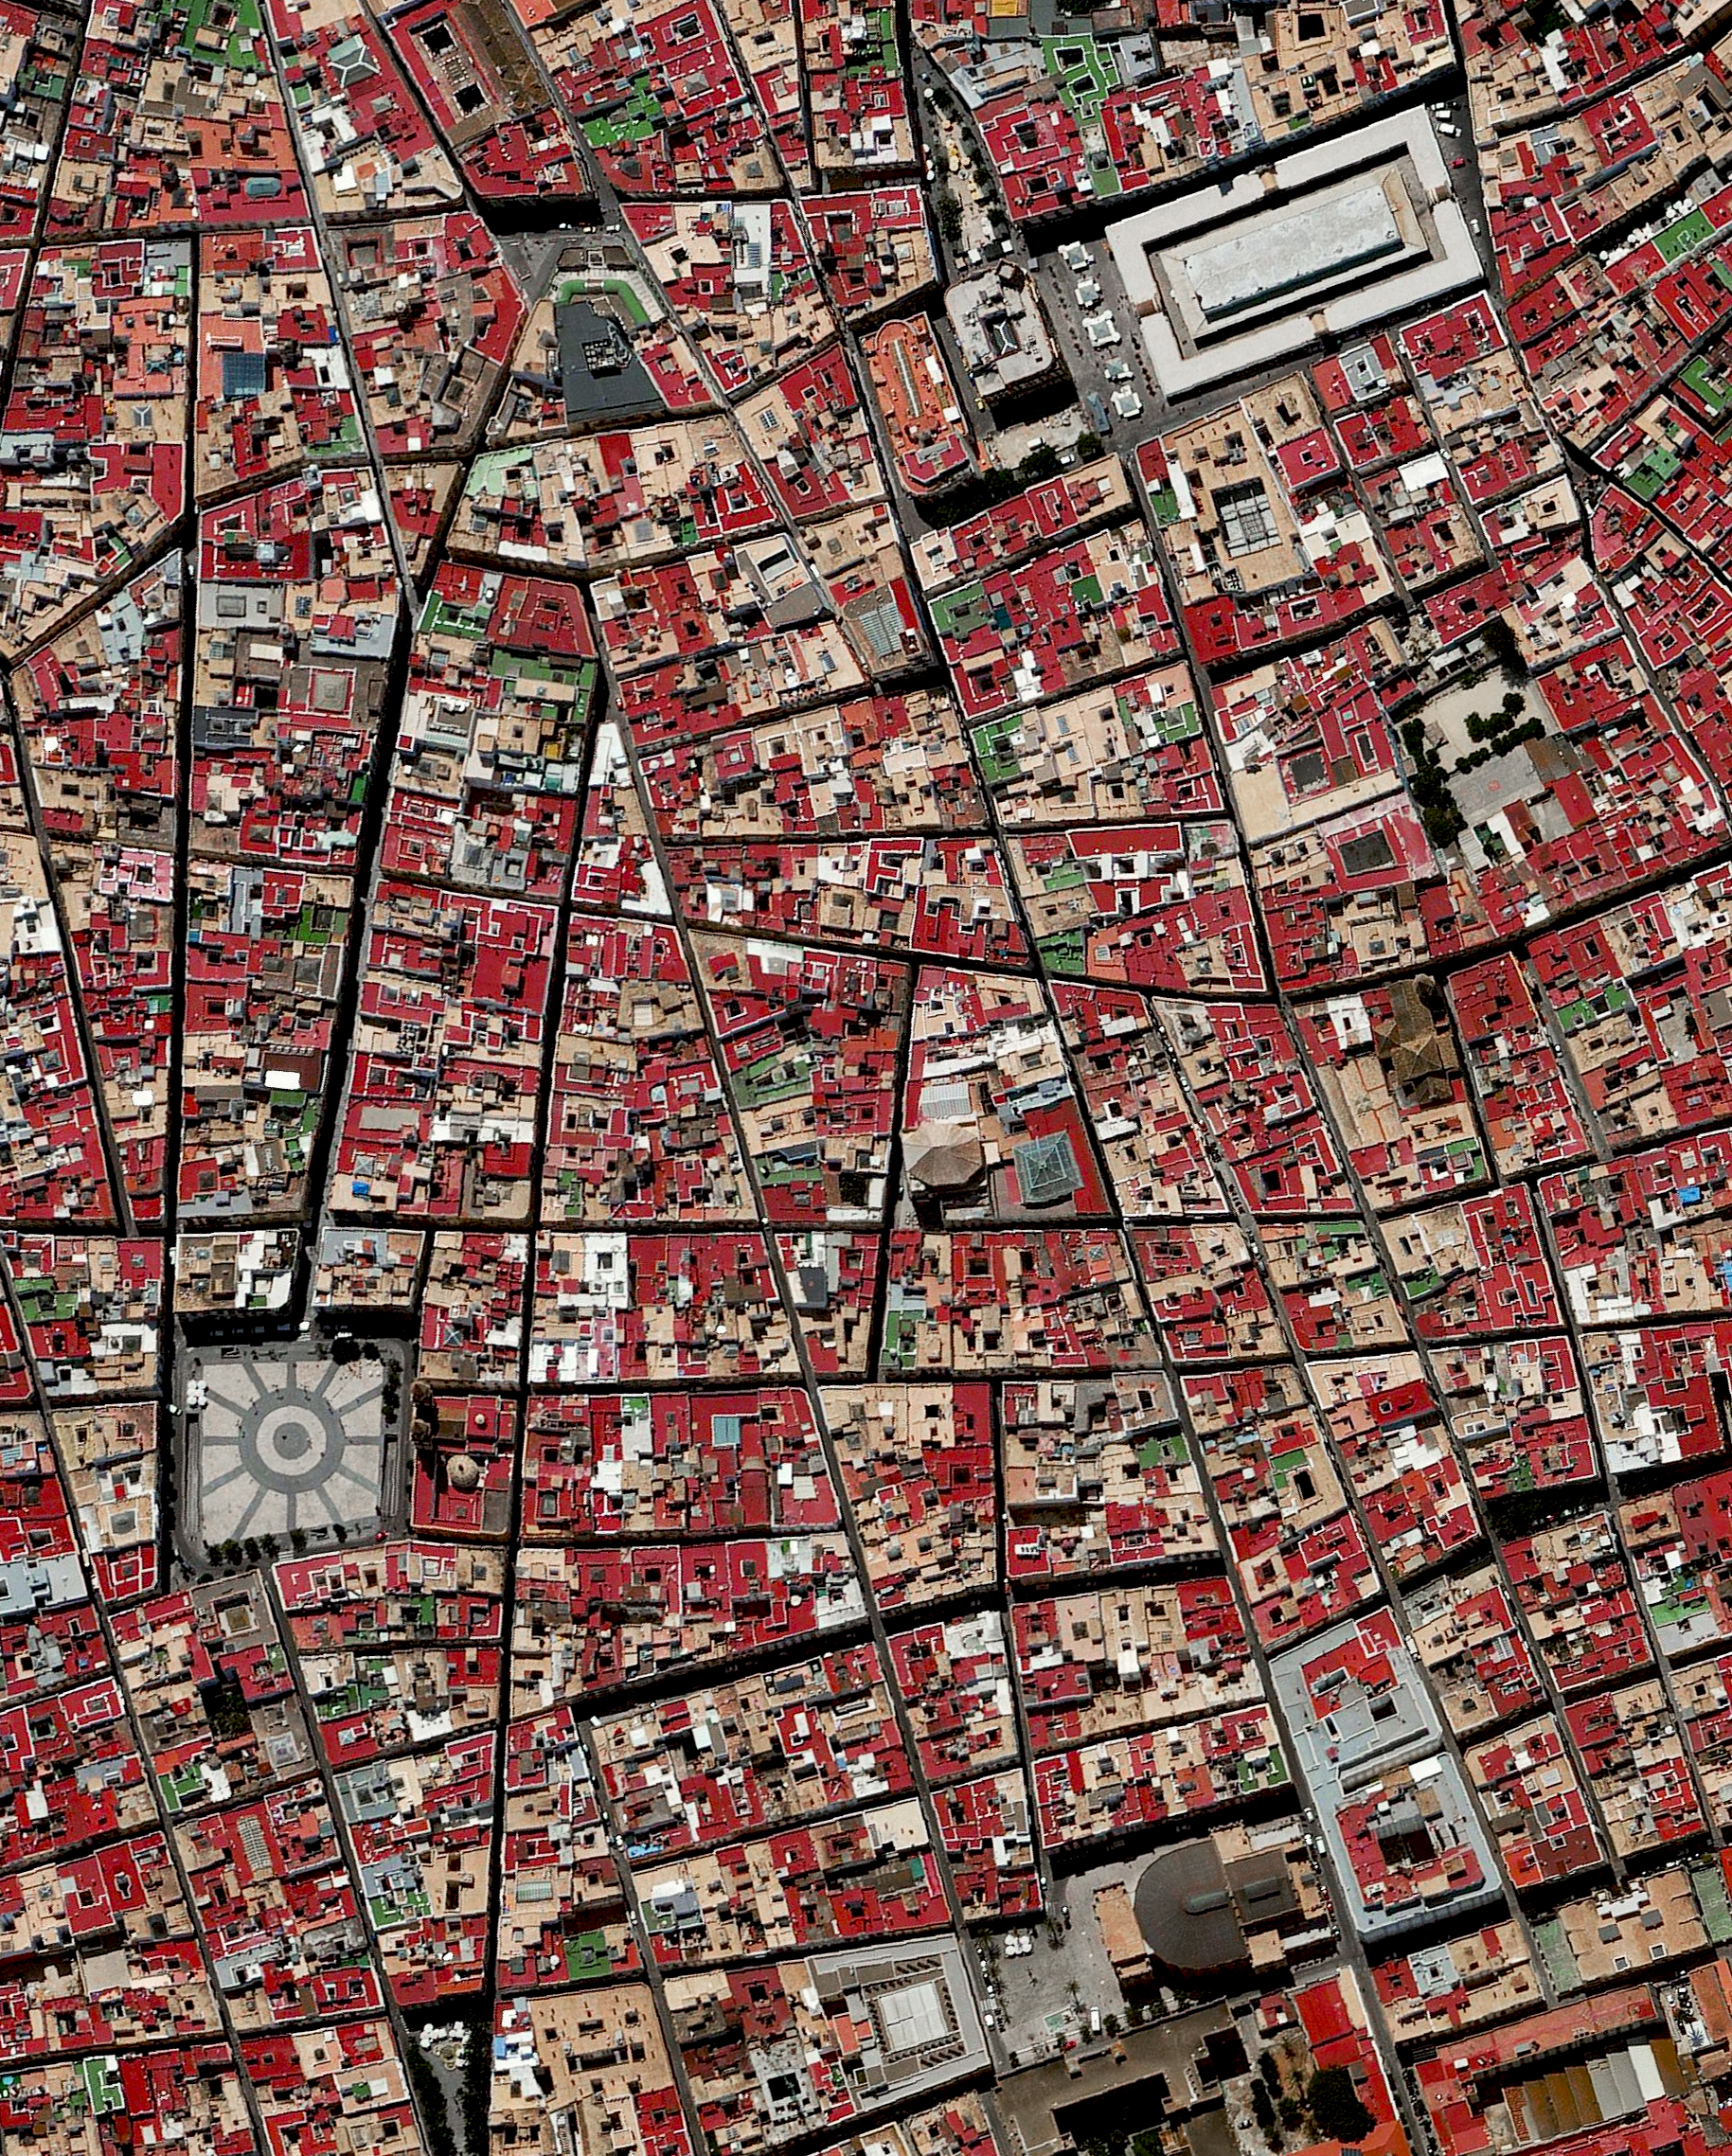 """11/14/2016   Cadiz   Cadiz, Spain  36.531514, -6.299827    Cádiz is an ancient port city surrounded by the sea in southwest Spain. Because the city was constructed upon a spit of land that cannot support high-rises, its skyline has not substantially changed since medieval times. A portion of the """"Old City"""" — an area characterized by narrow winding alleys connecting large plazas and markets — is seen in this Overview."""